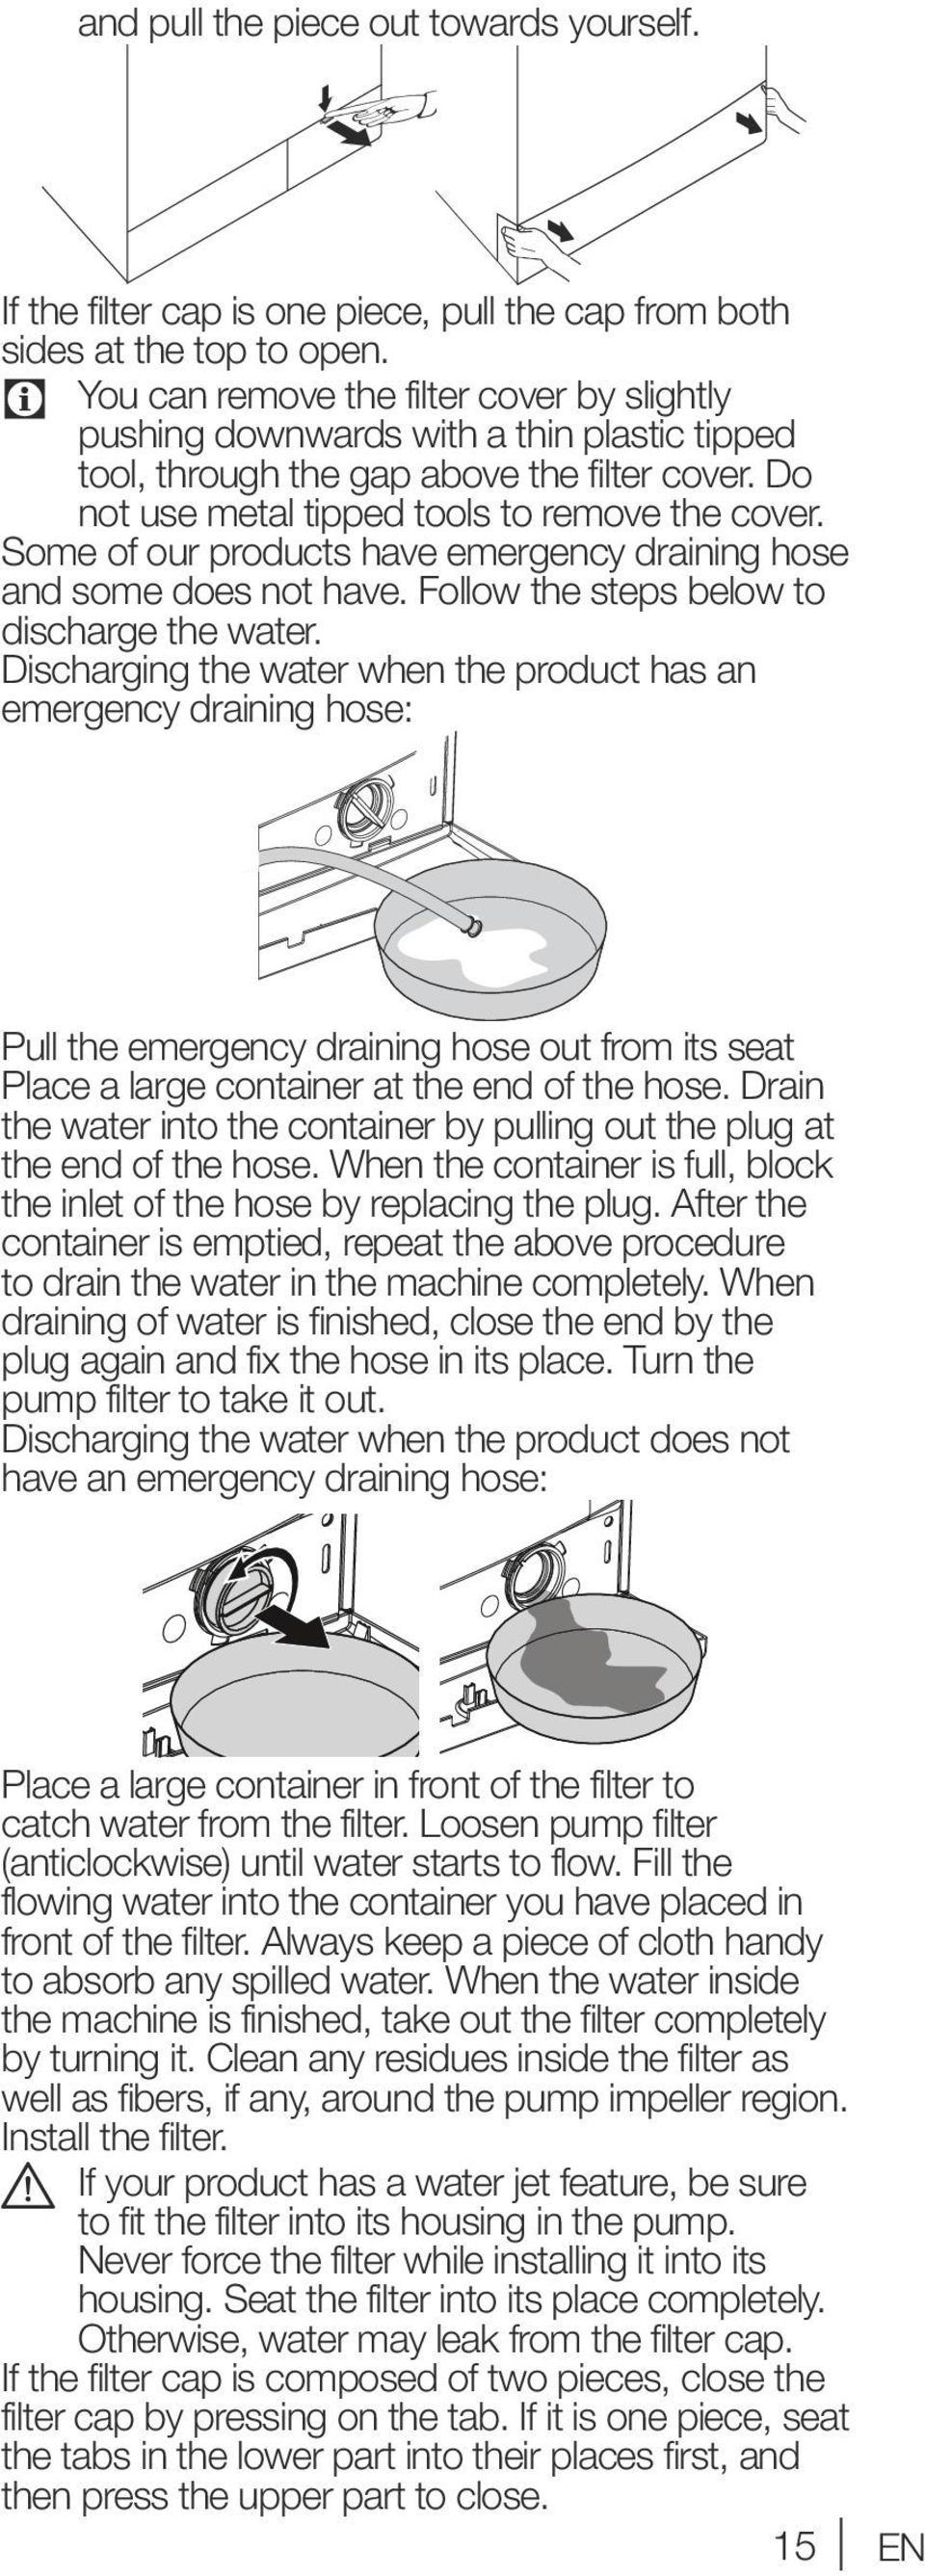 Some of our products have emergency draining hose and some does not have. Follow the steps below to discharge the water.